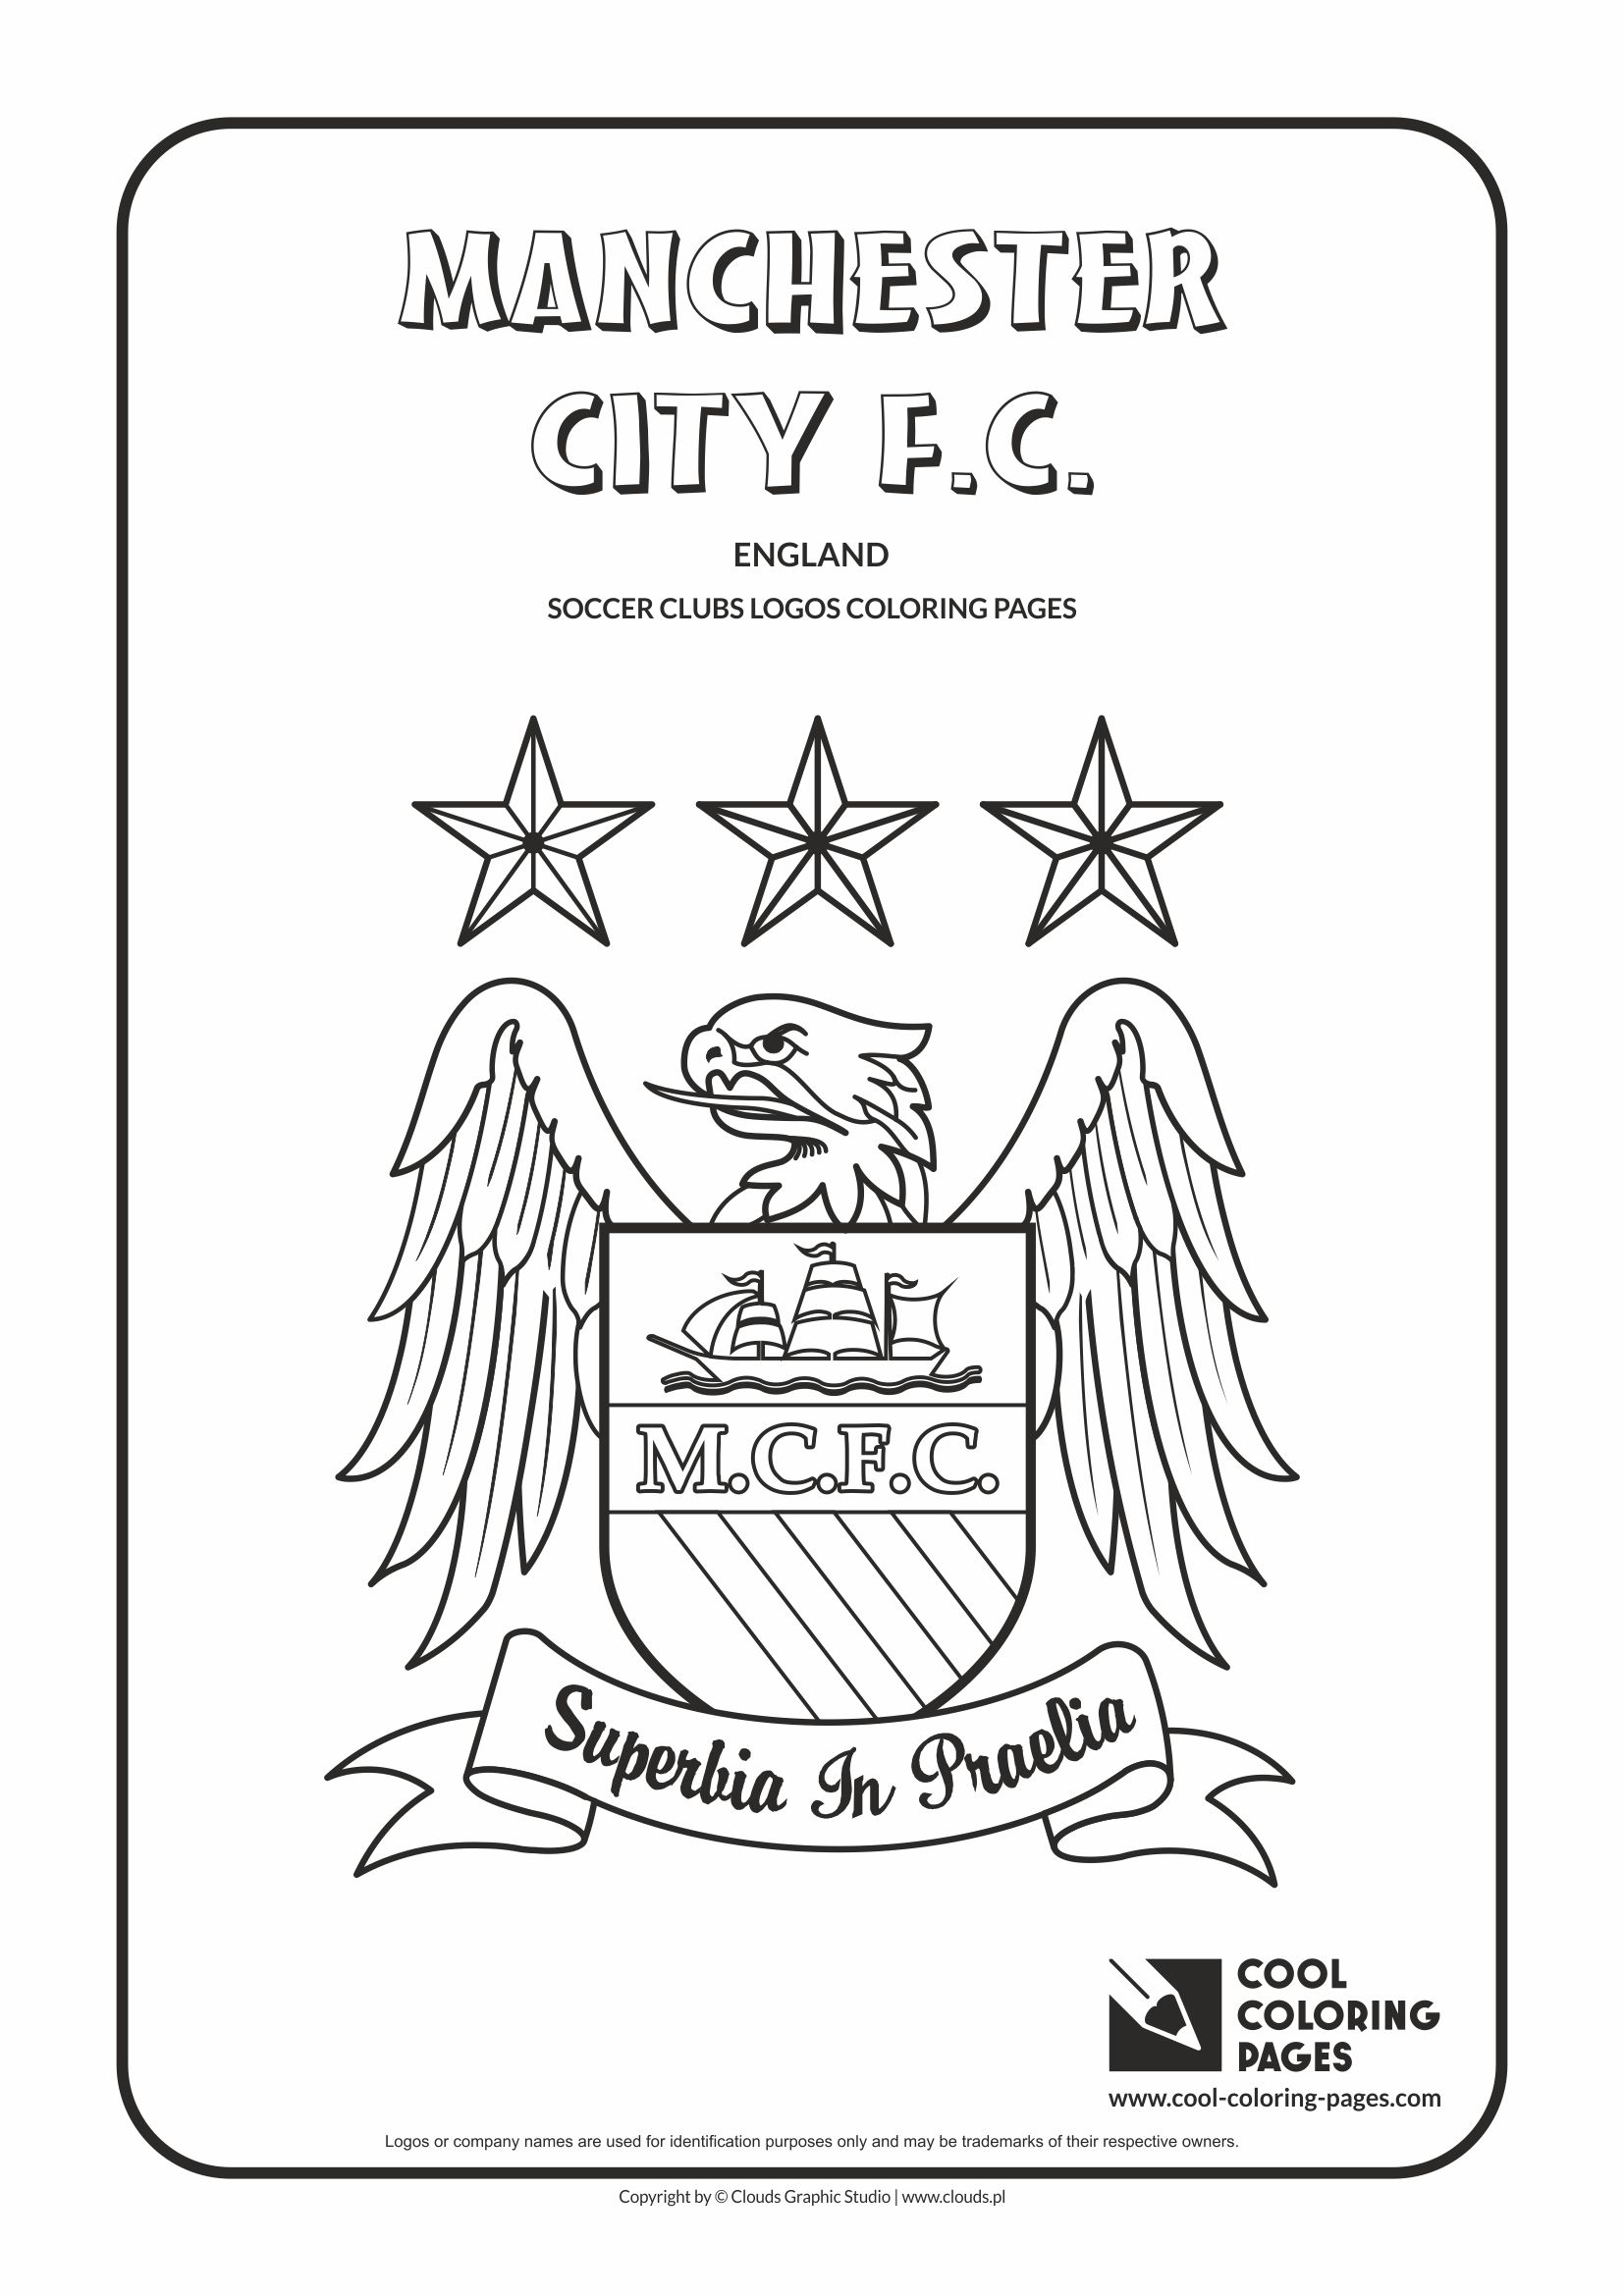 manchester city f c logo coloring page cool coloring pages